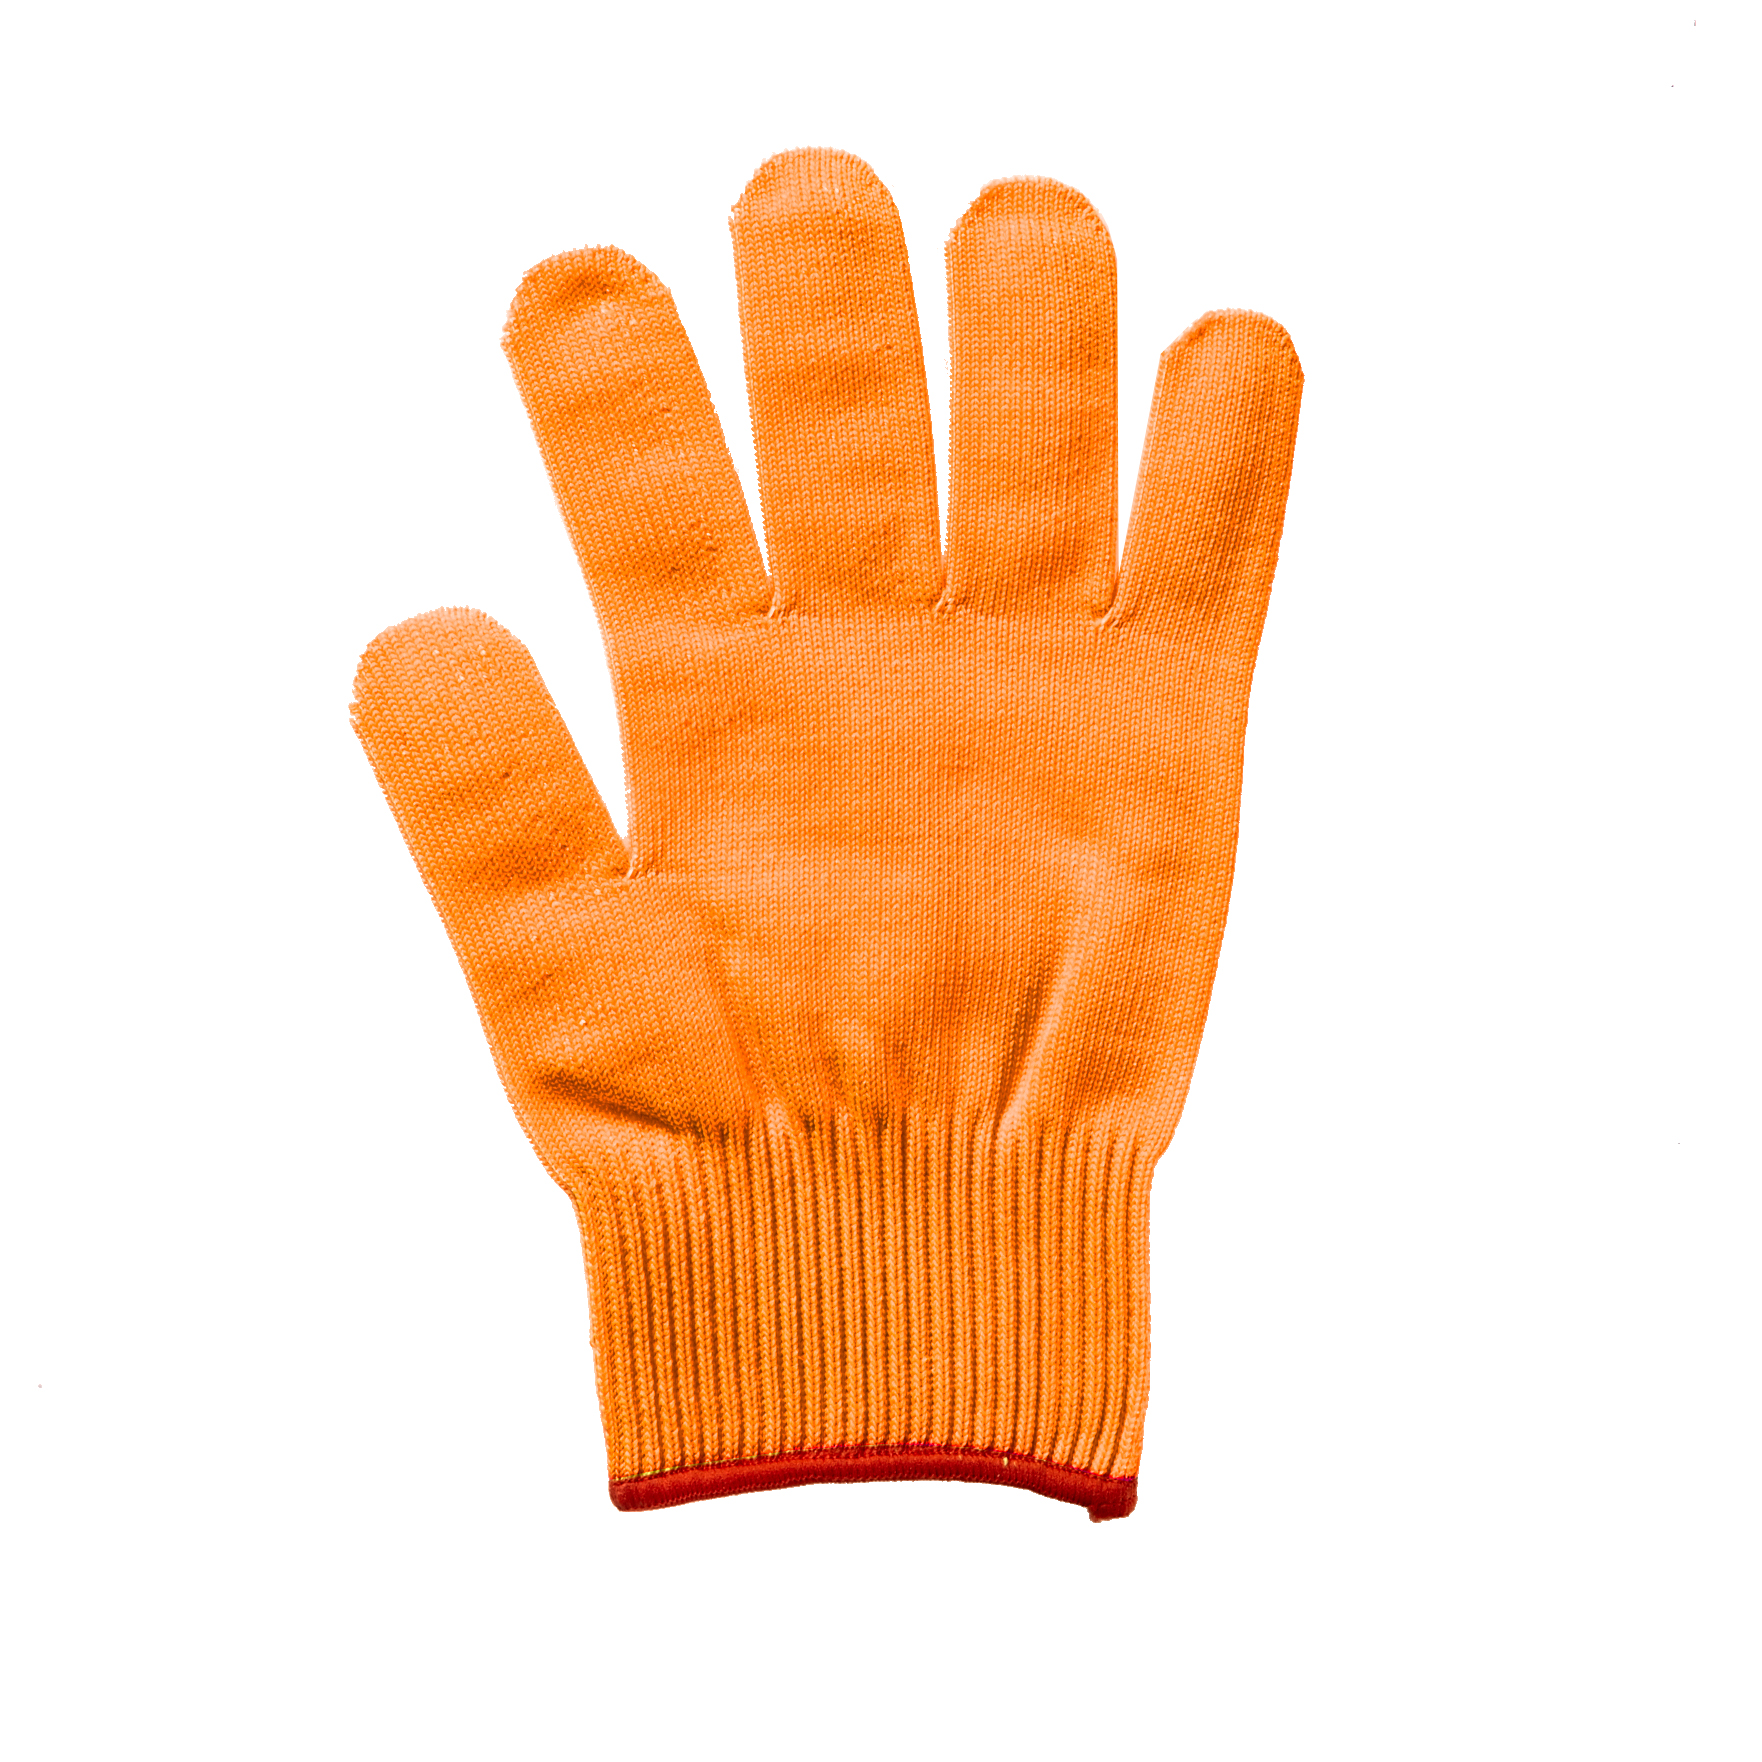 Mercer Culinary M33415ORS glove, cut resistant